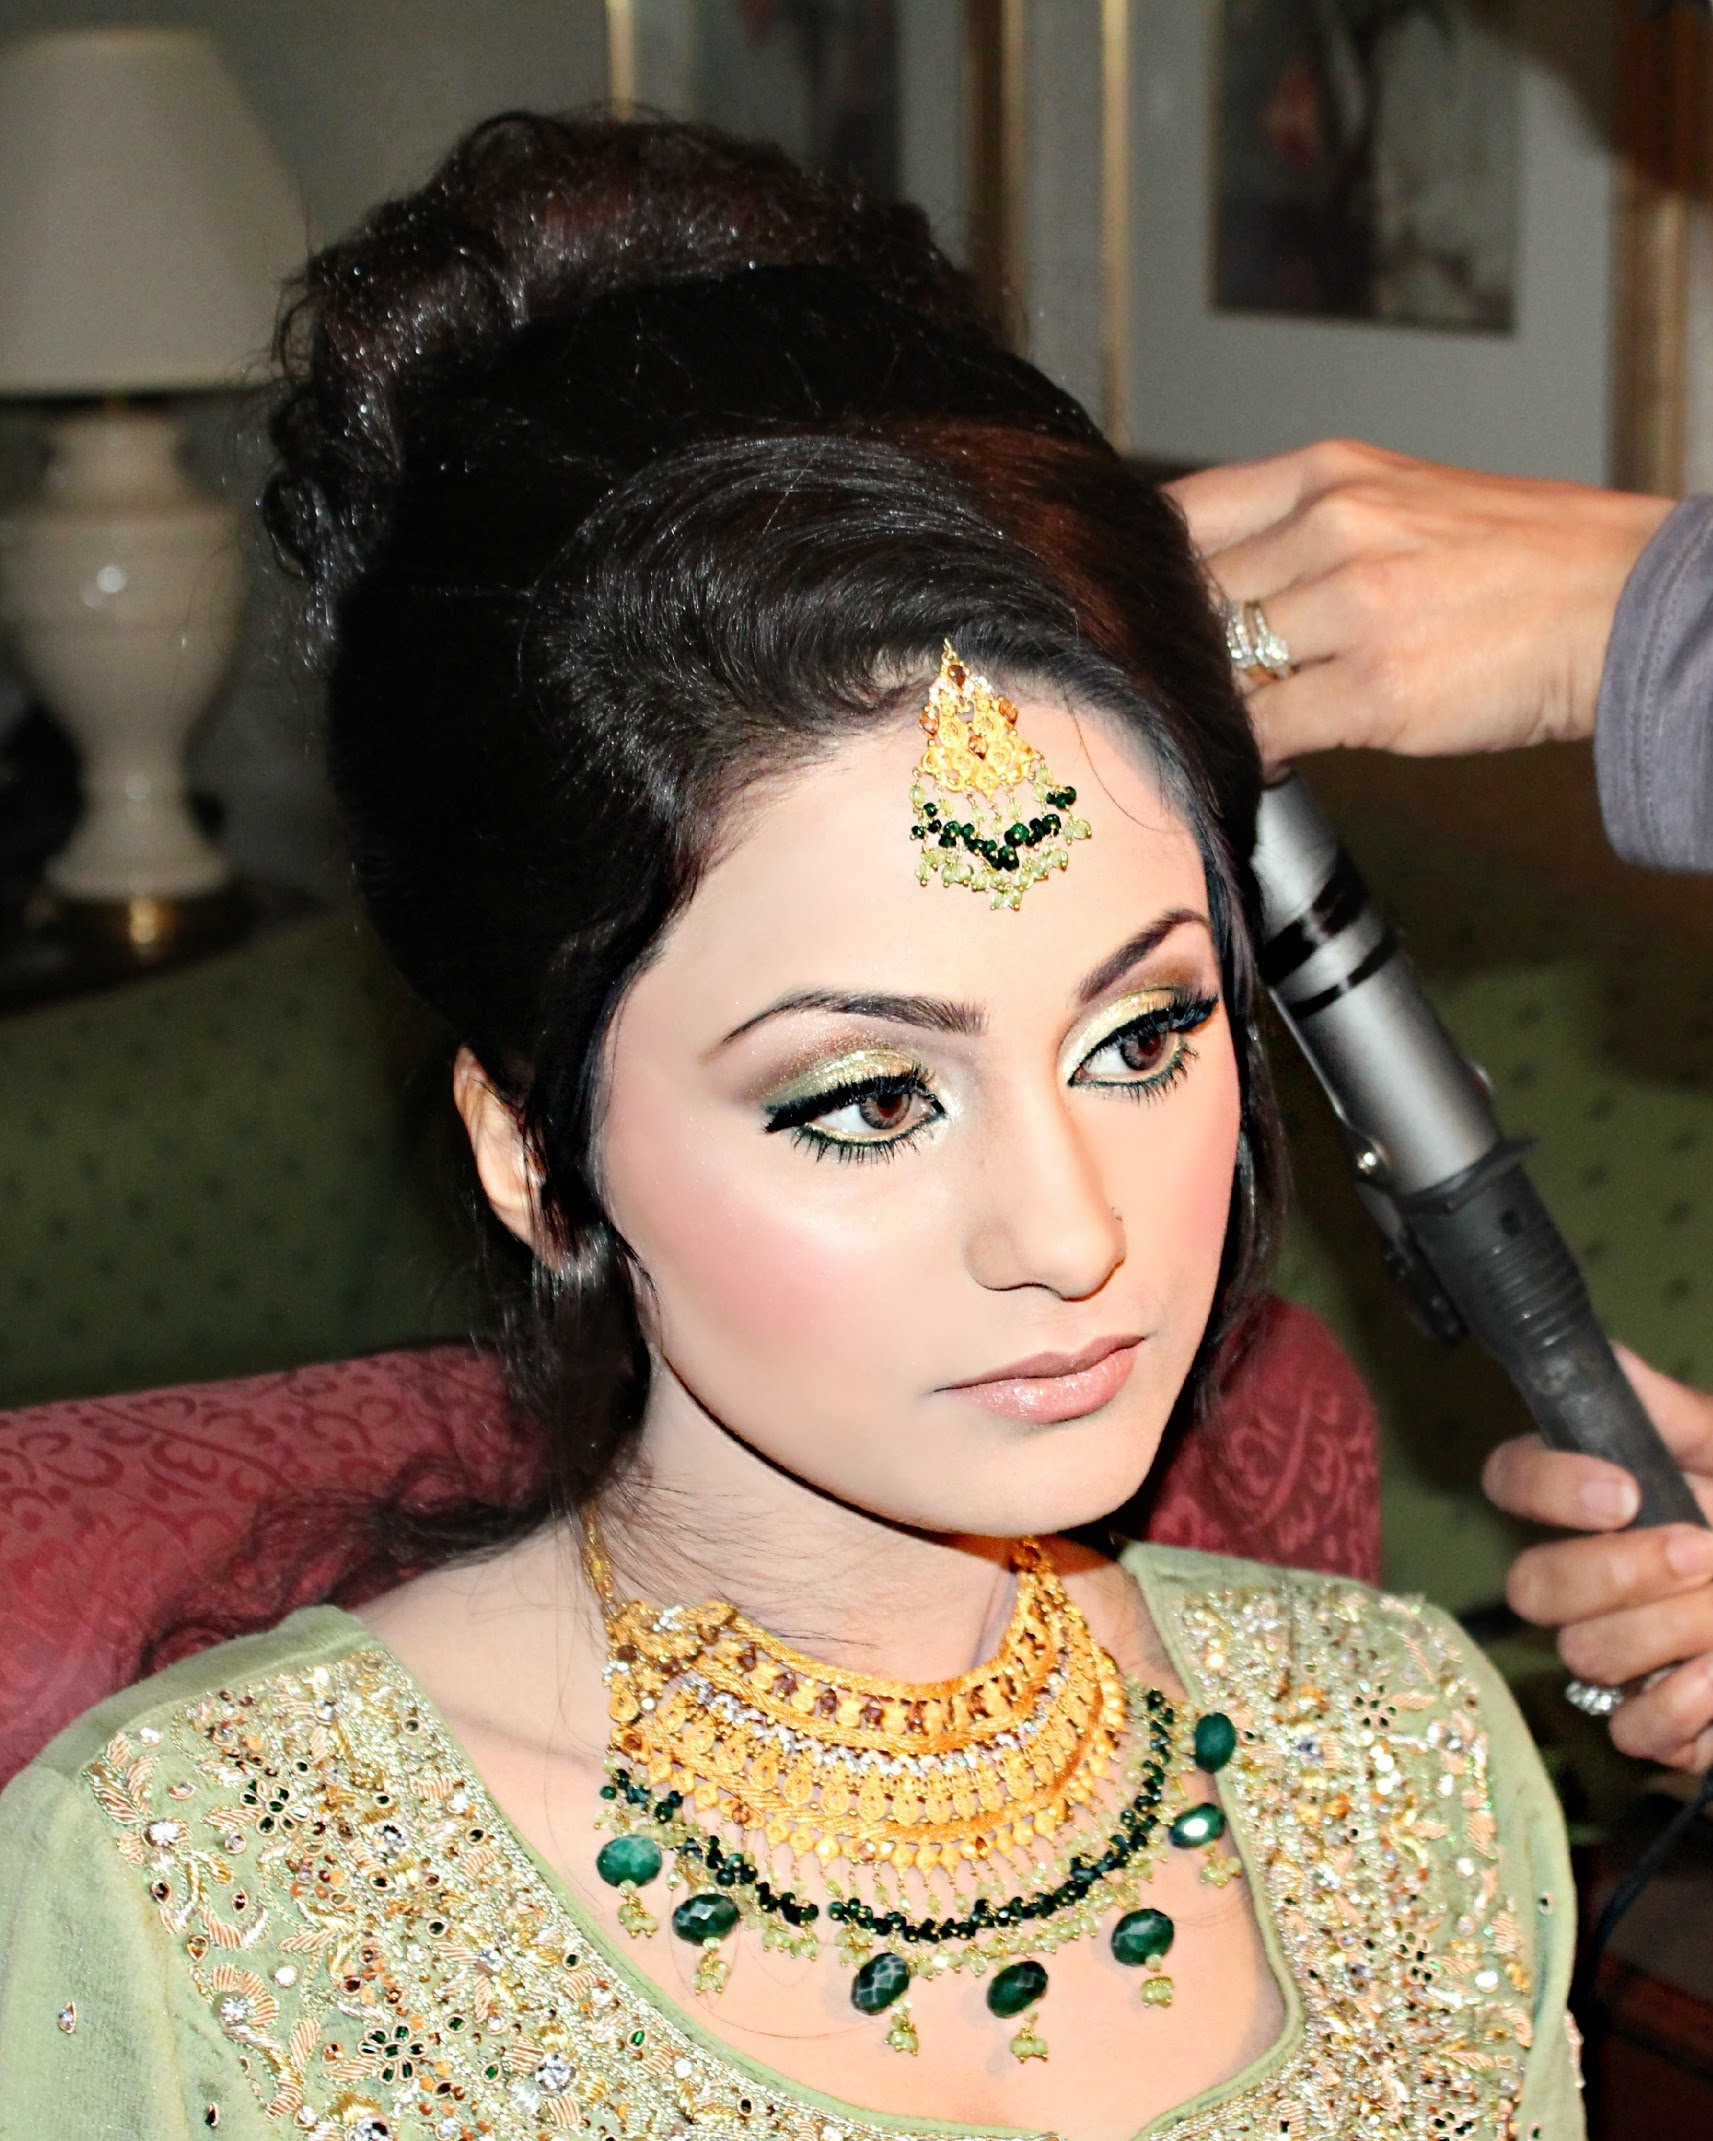 Arabic Bridal Makeup Video Download Svnrdump Download